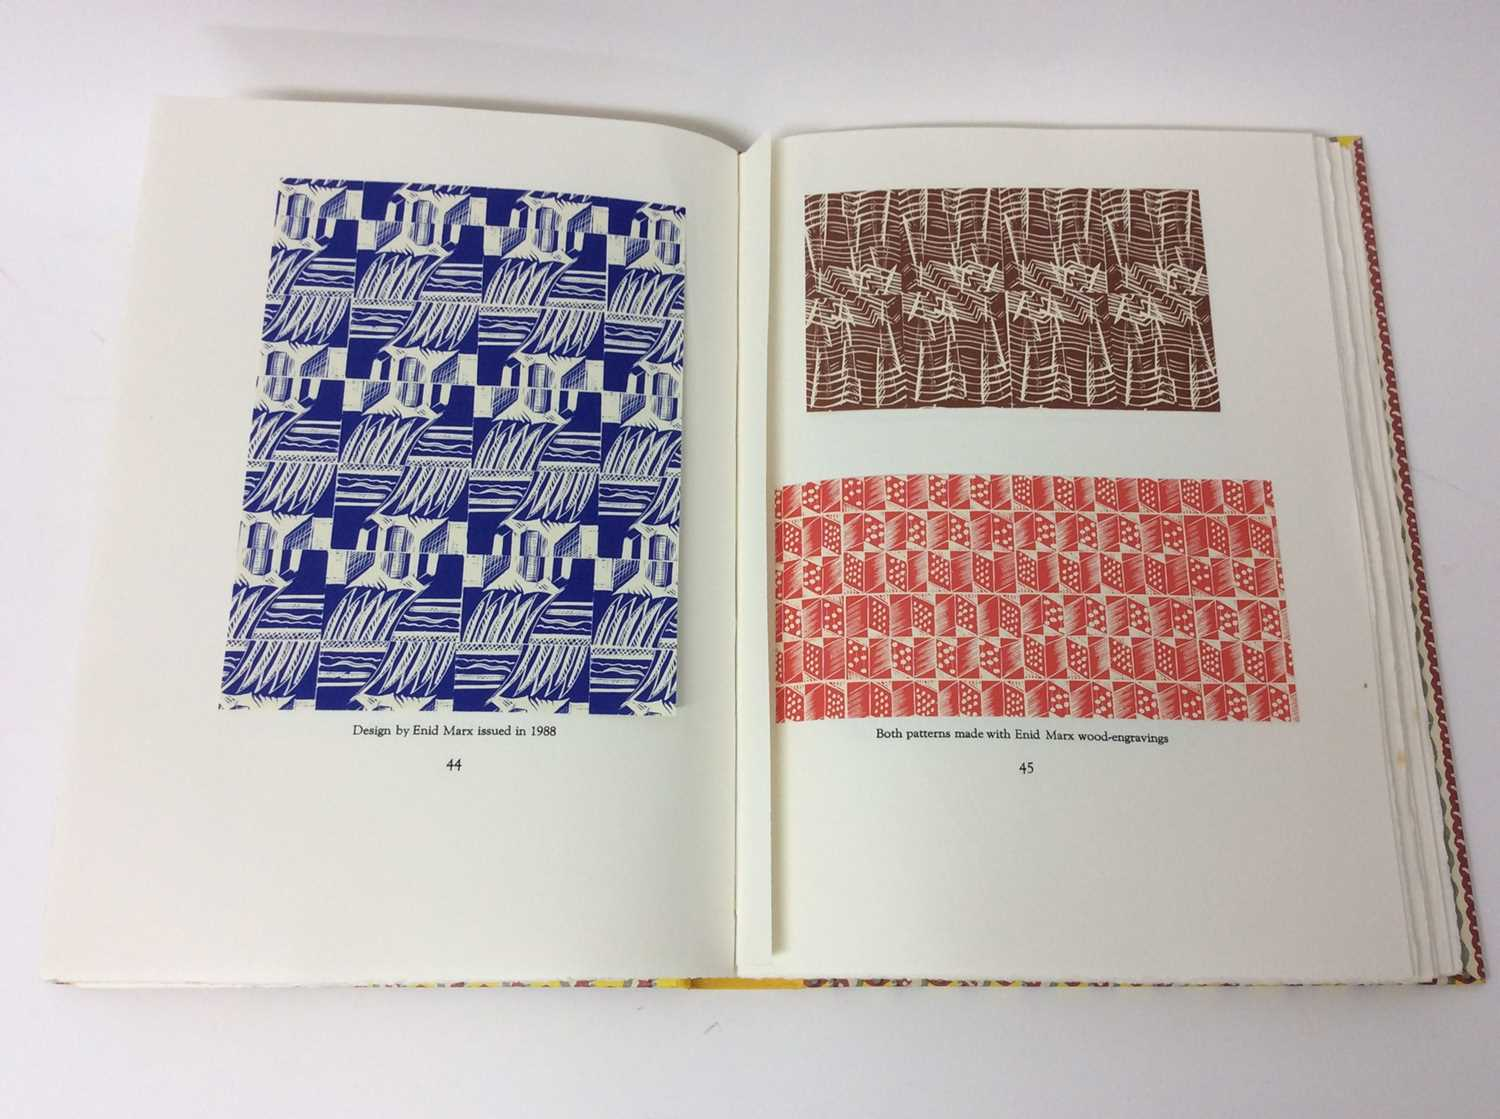 In Praise of Patterned Papers, Incline Press, 200/300 - Image 7 of 12